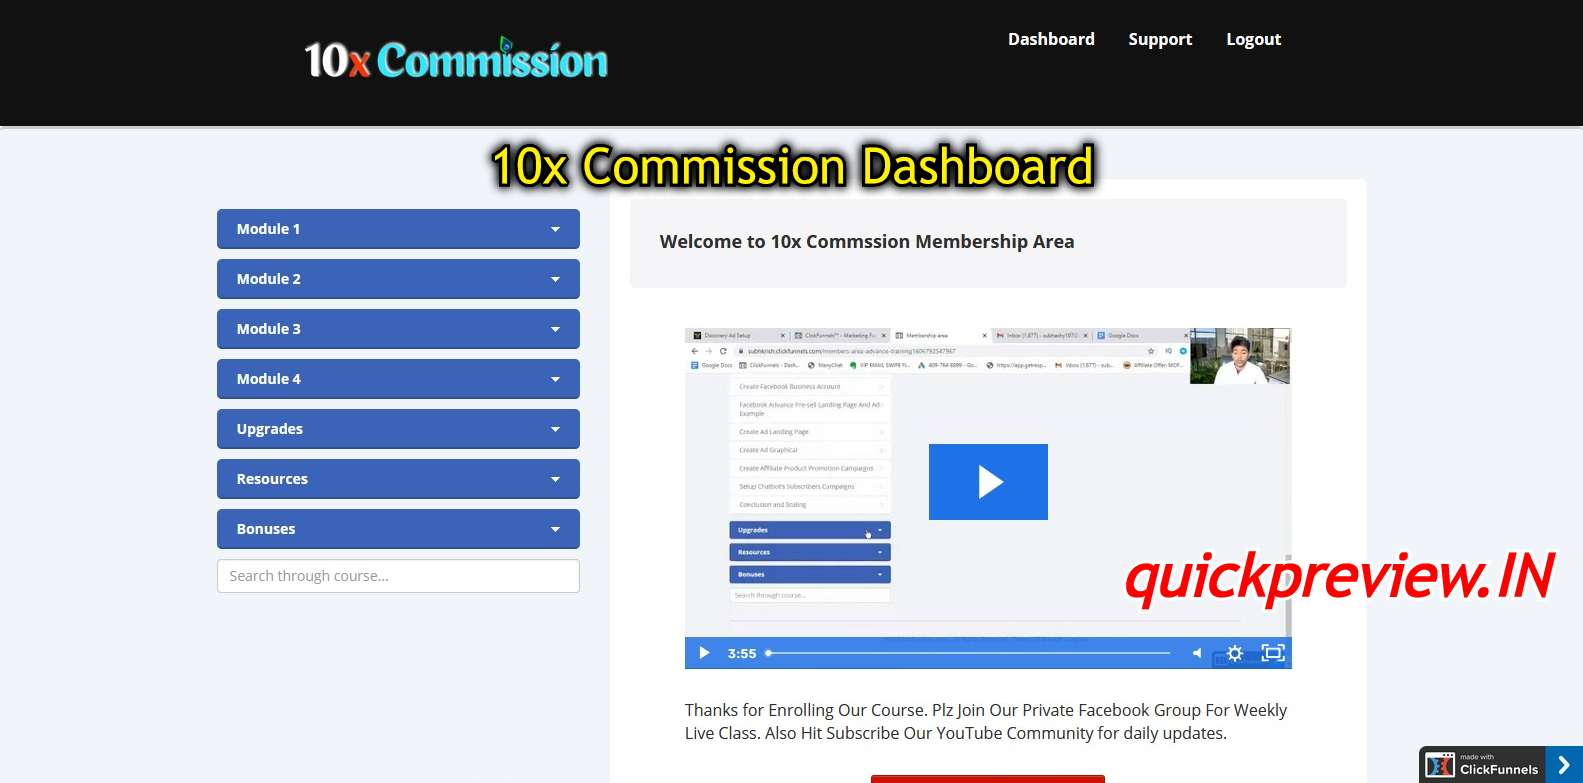 10x Commission dashboard